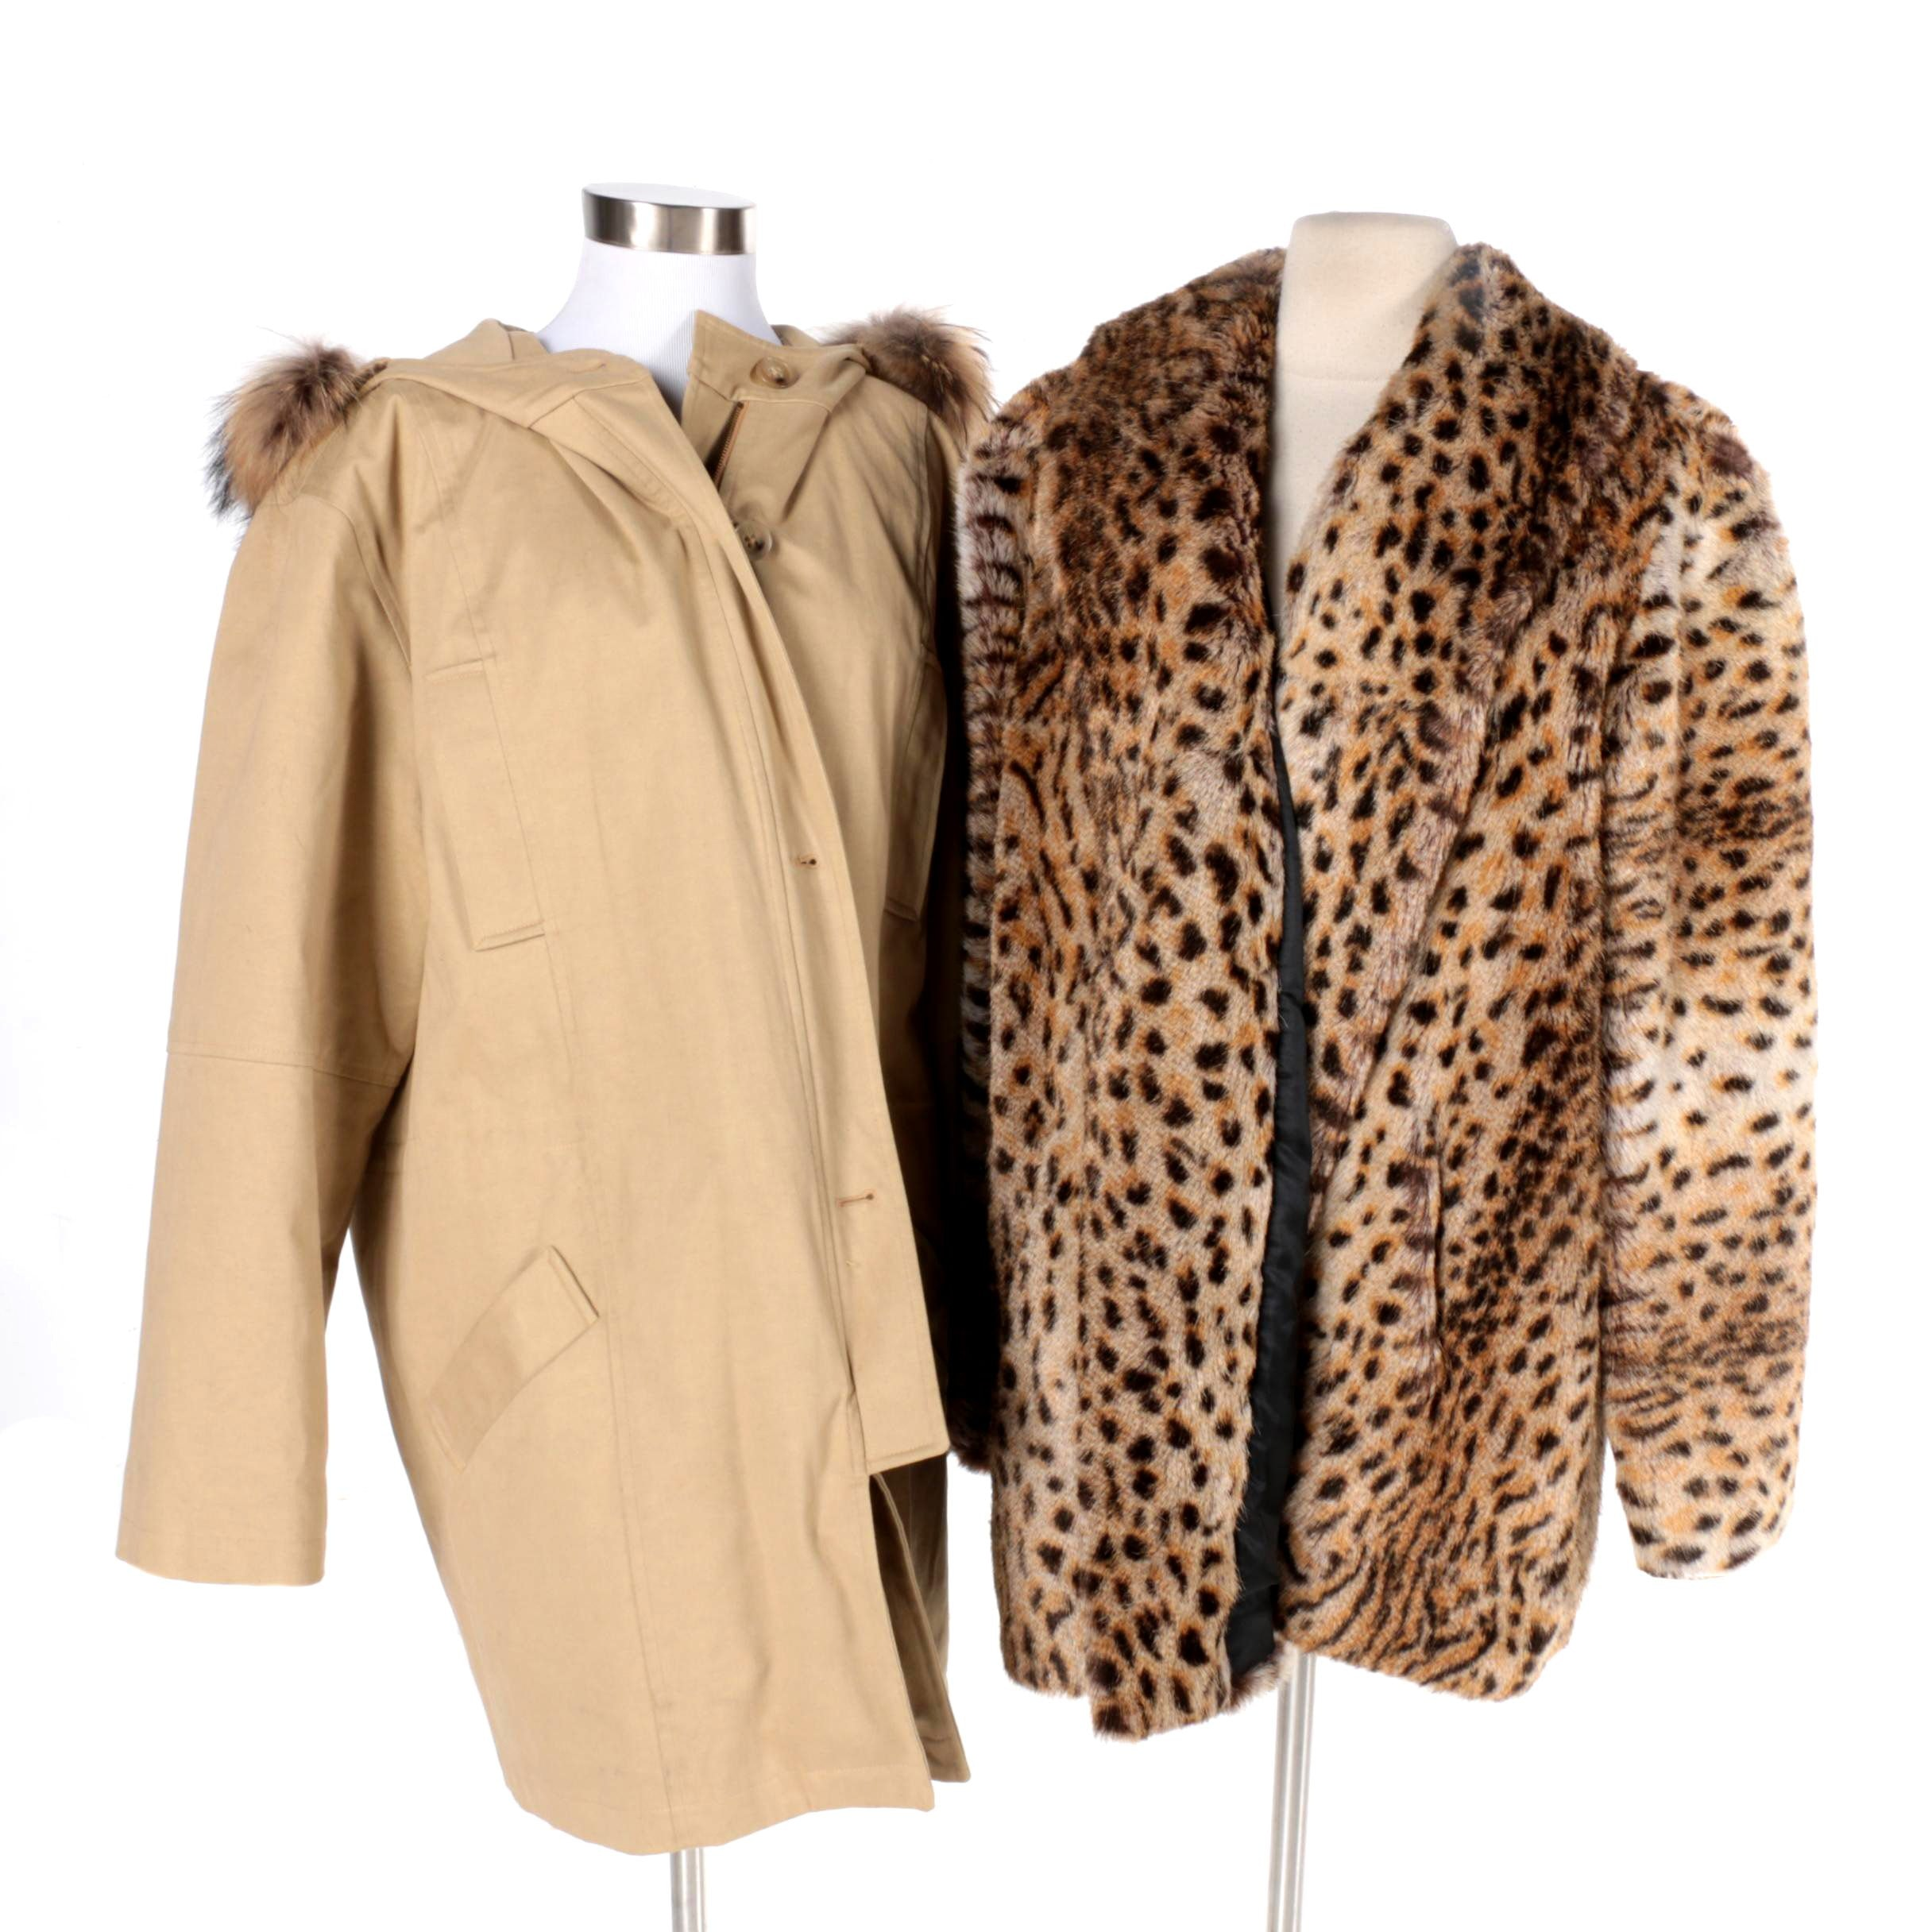 Company Ellen Tracy Coat with Raccoon Trim and Faux Cheetah Fur Jacket